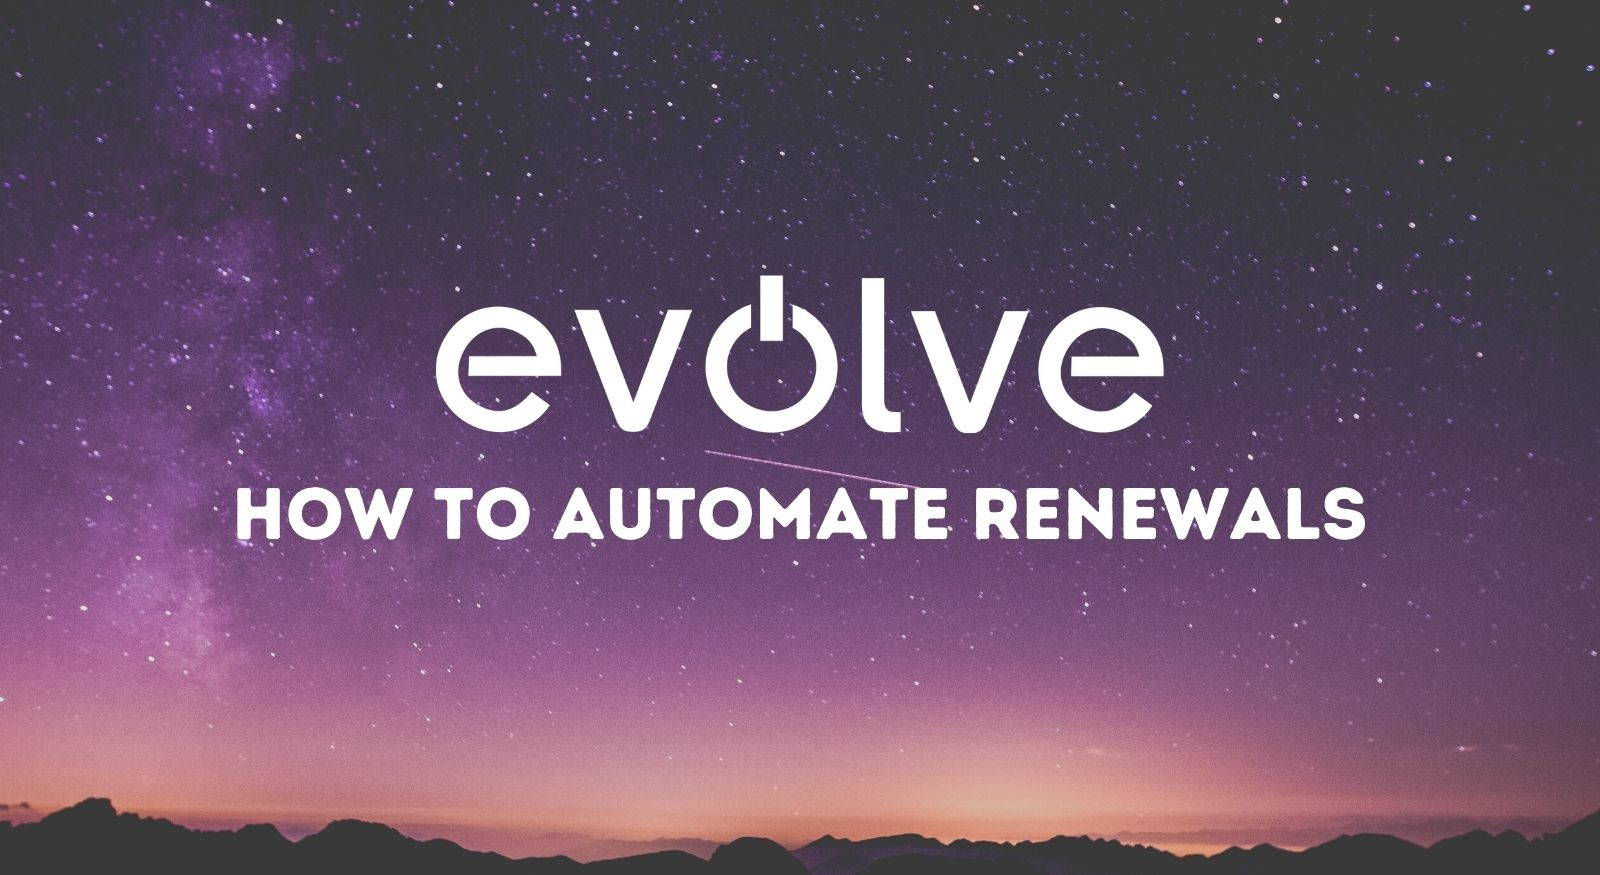 Evolve | Automate Renewals